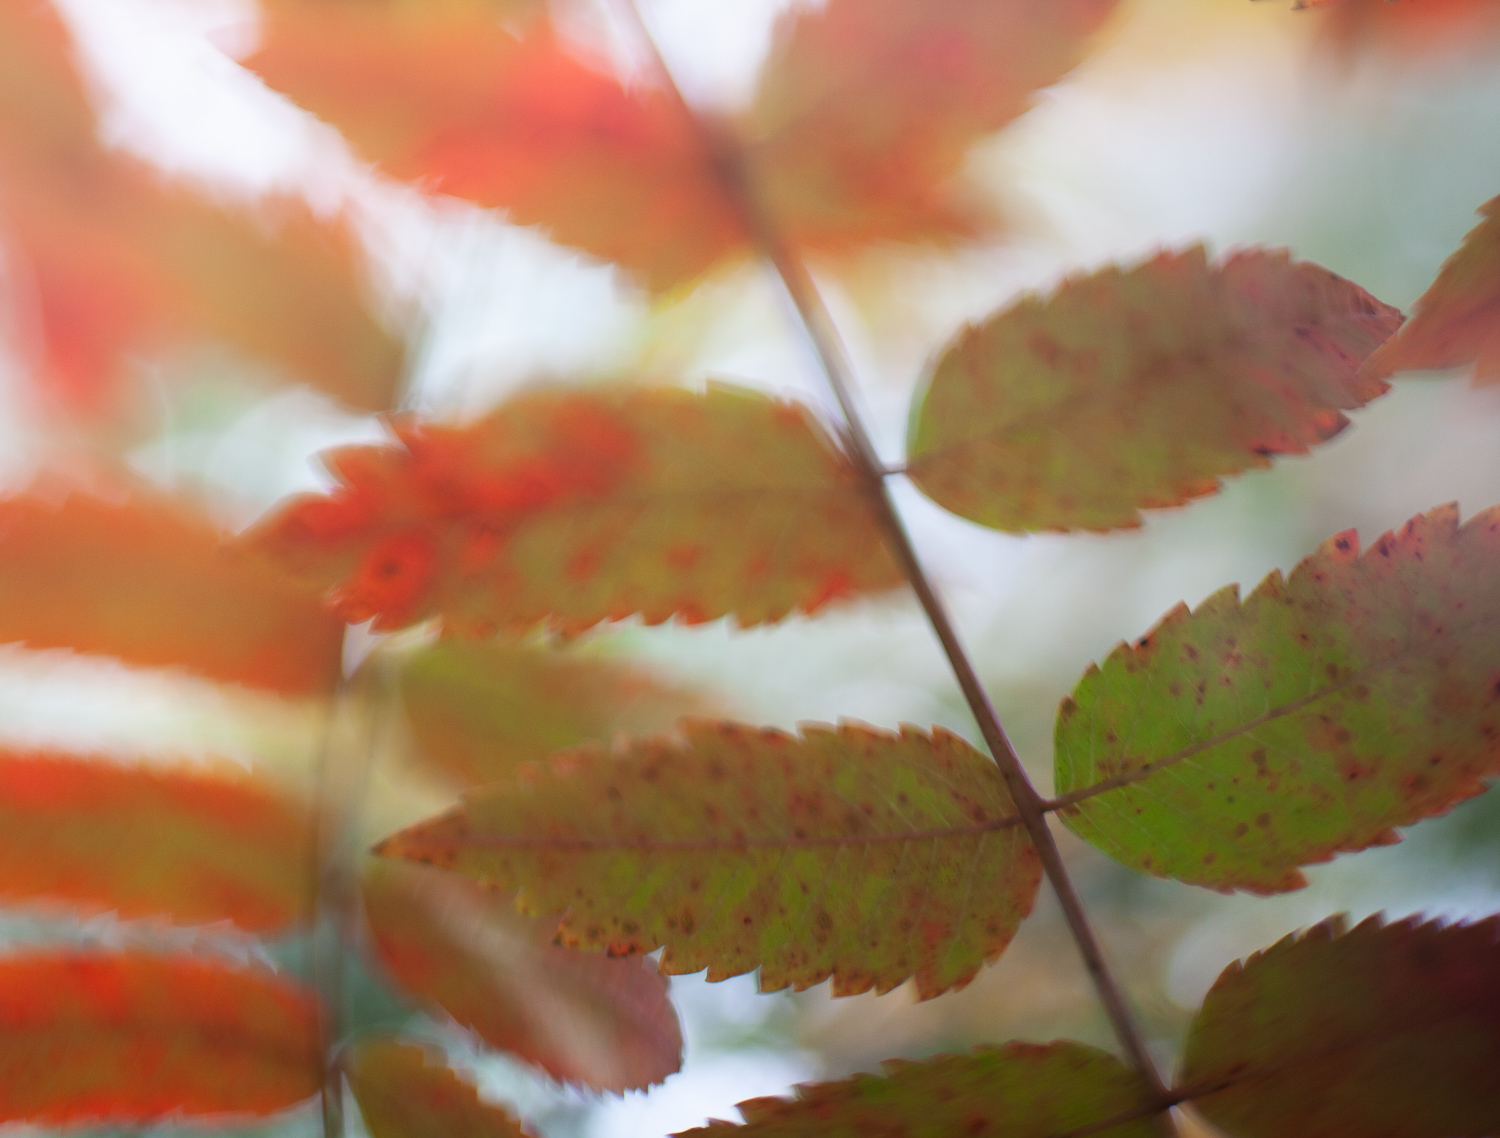 red leaves - 5 Ways to Make Extraordinary Photographs of Ordinary Subjects